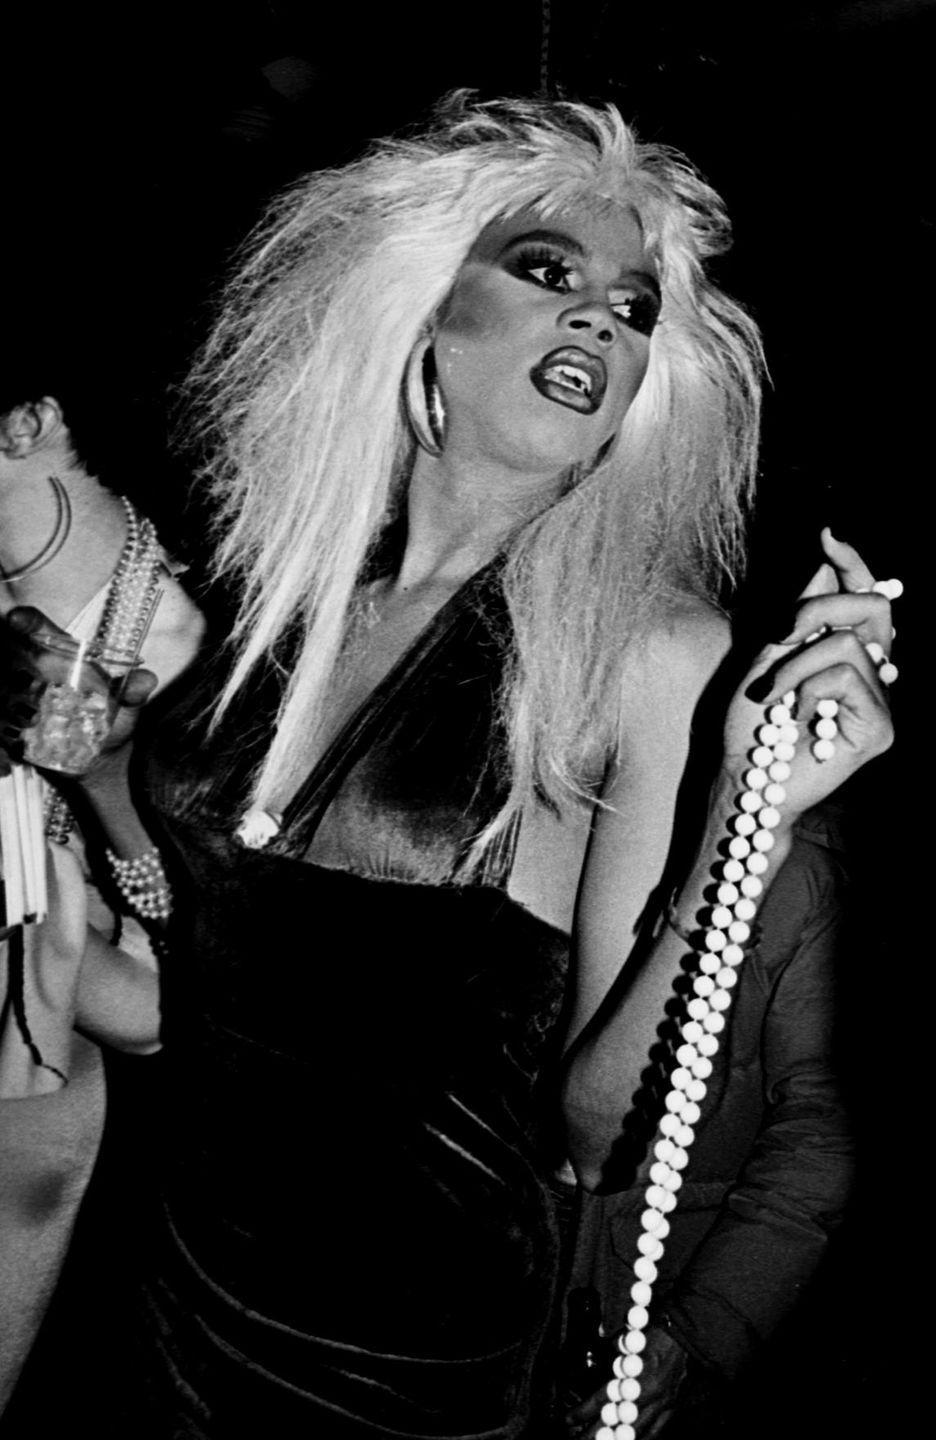 <p>In full party girl mode at NYC's Roxy nightclub. </p>